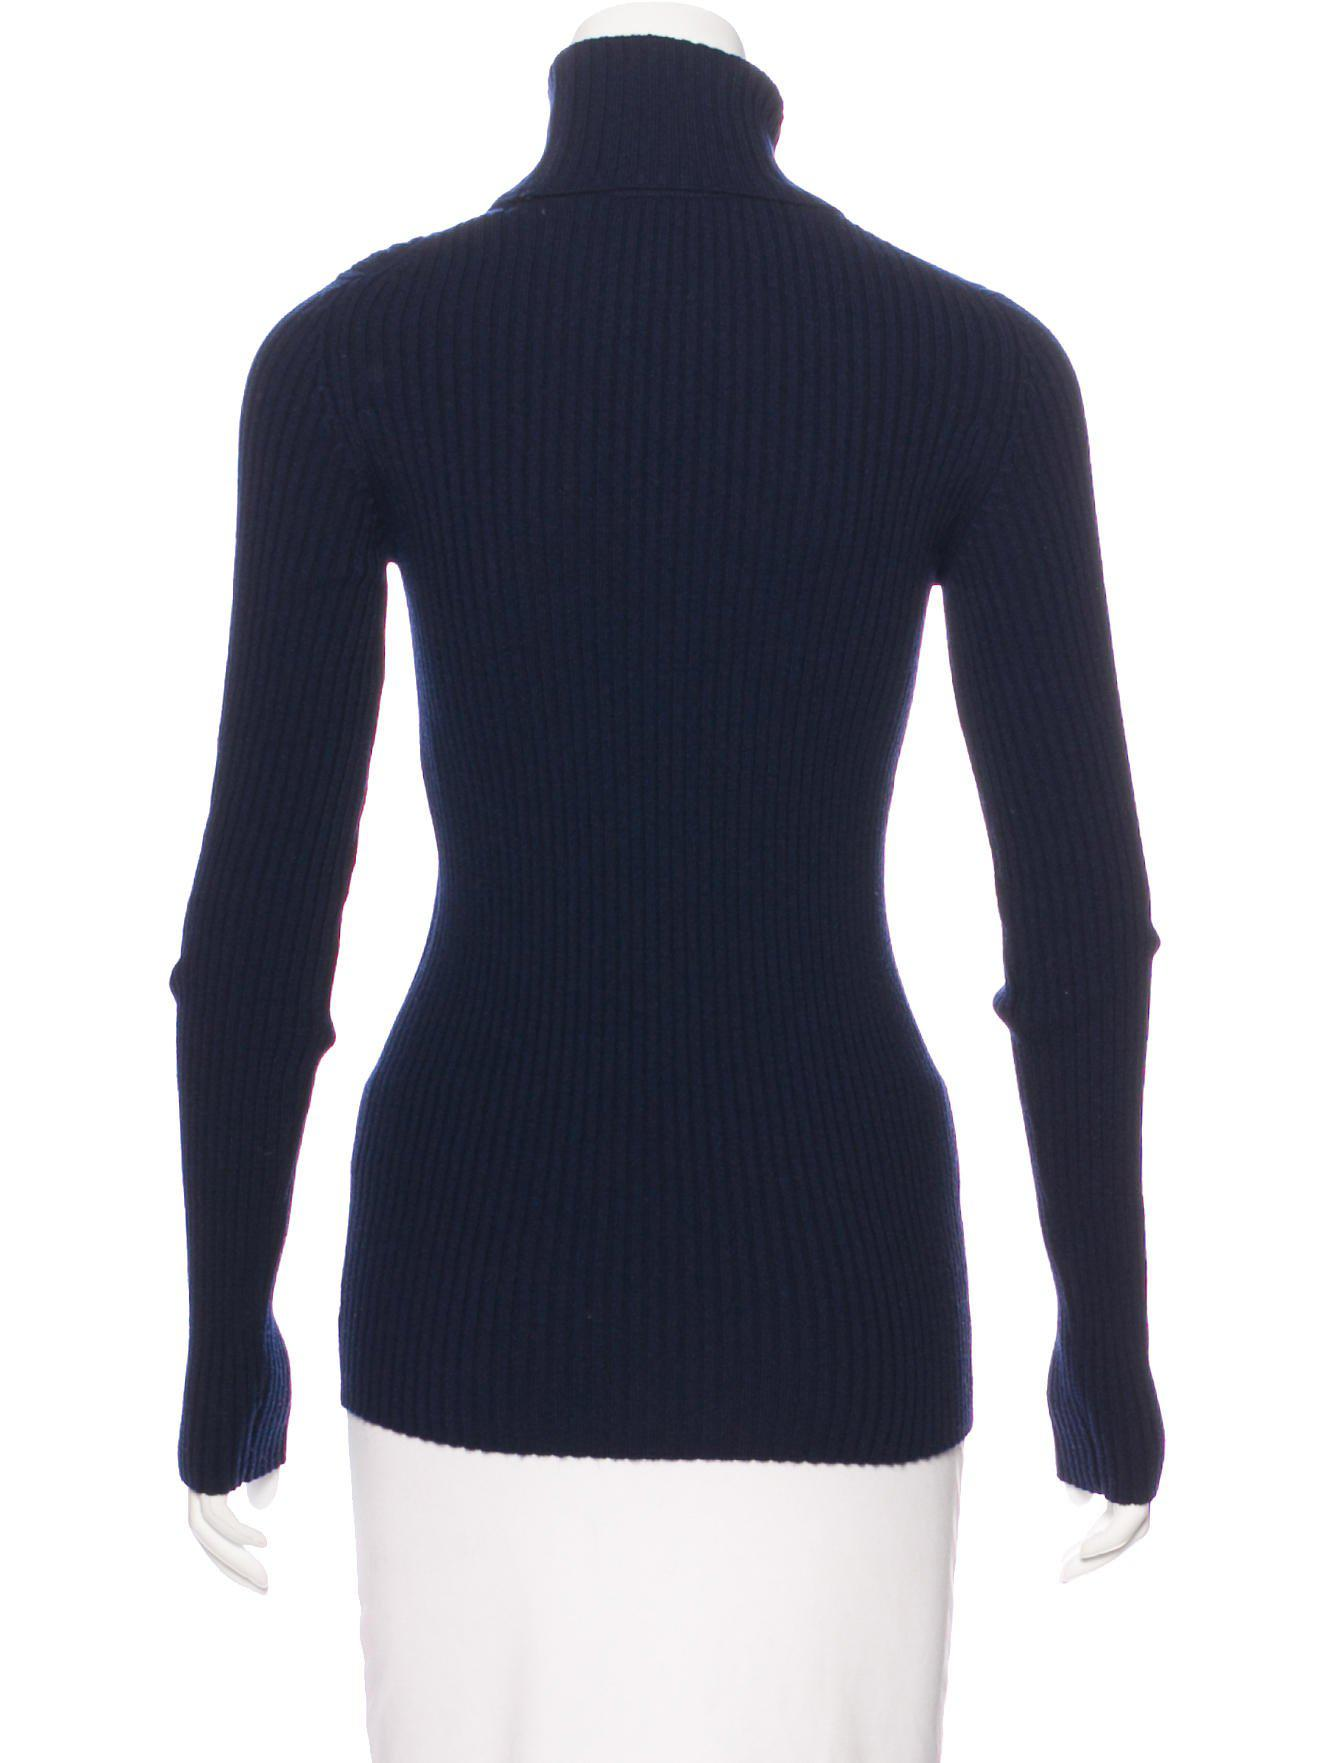 Chanel Cashmere Turtleneck Sweater Navy in Blue | Lyst